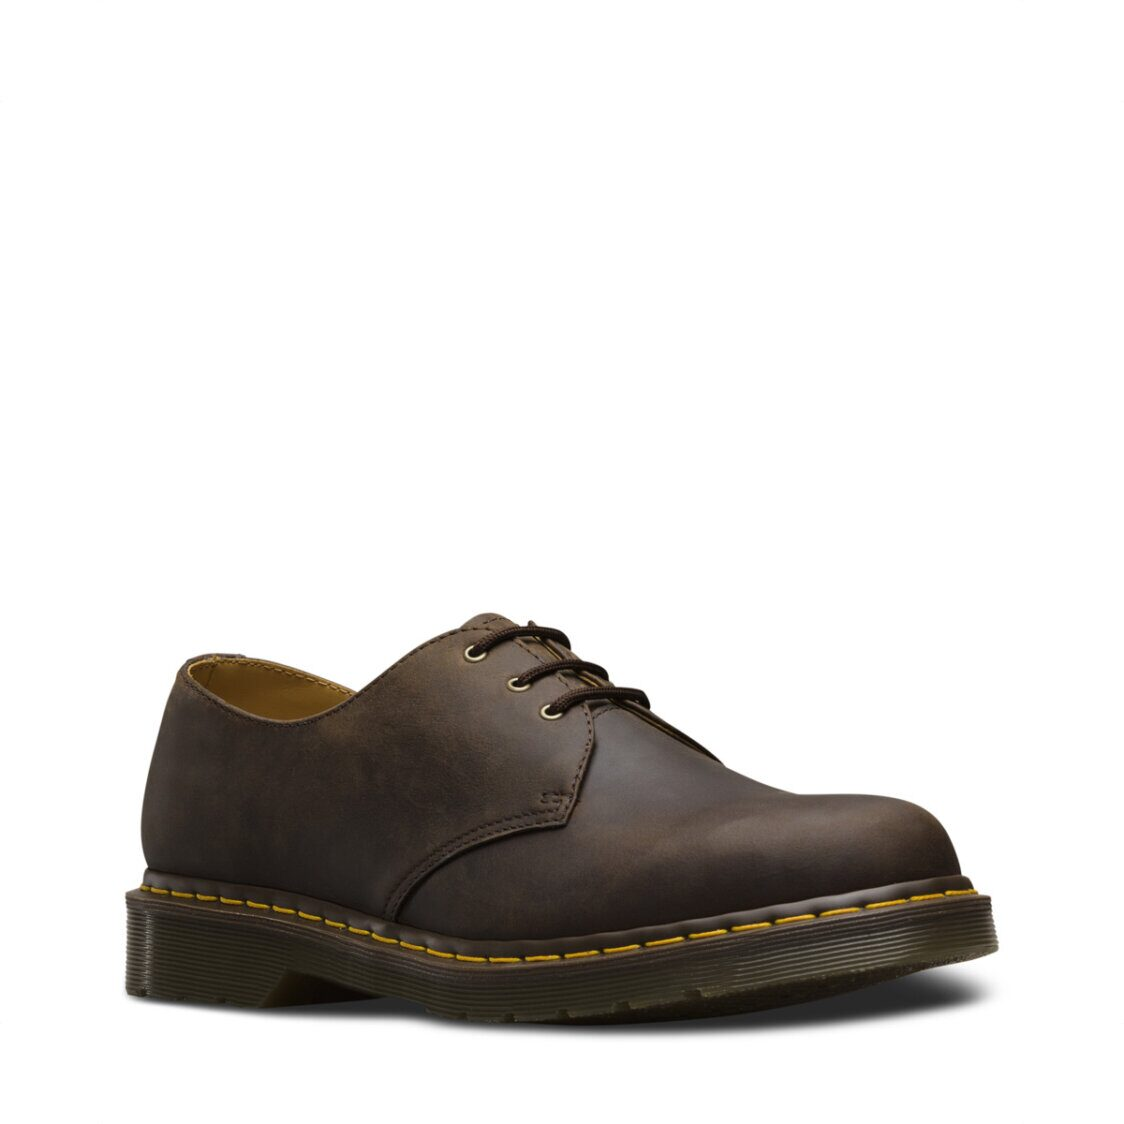 Dr Marten 1461 Crazy Horse Leather Oxford Shoes